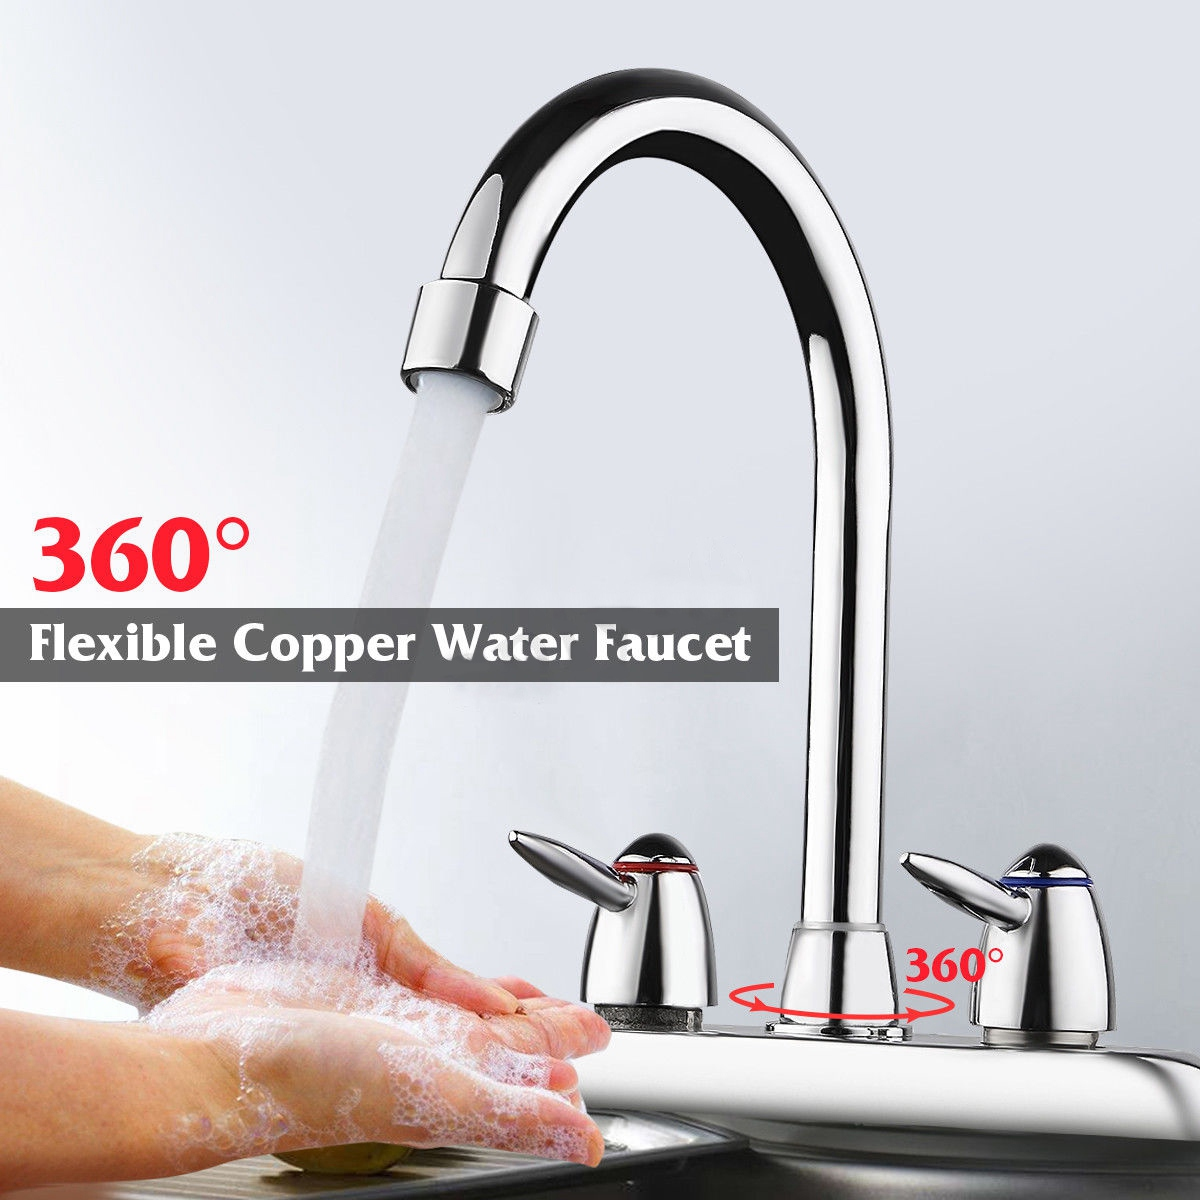 360 Degree Swivel Bathroom Kitchen Faucet Chrome Double Two Handle Hot Cold Sink Mixer Tap Sprayer Water Mixer Tap